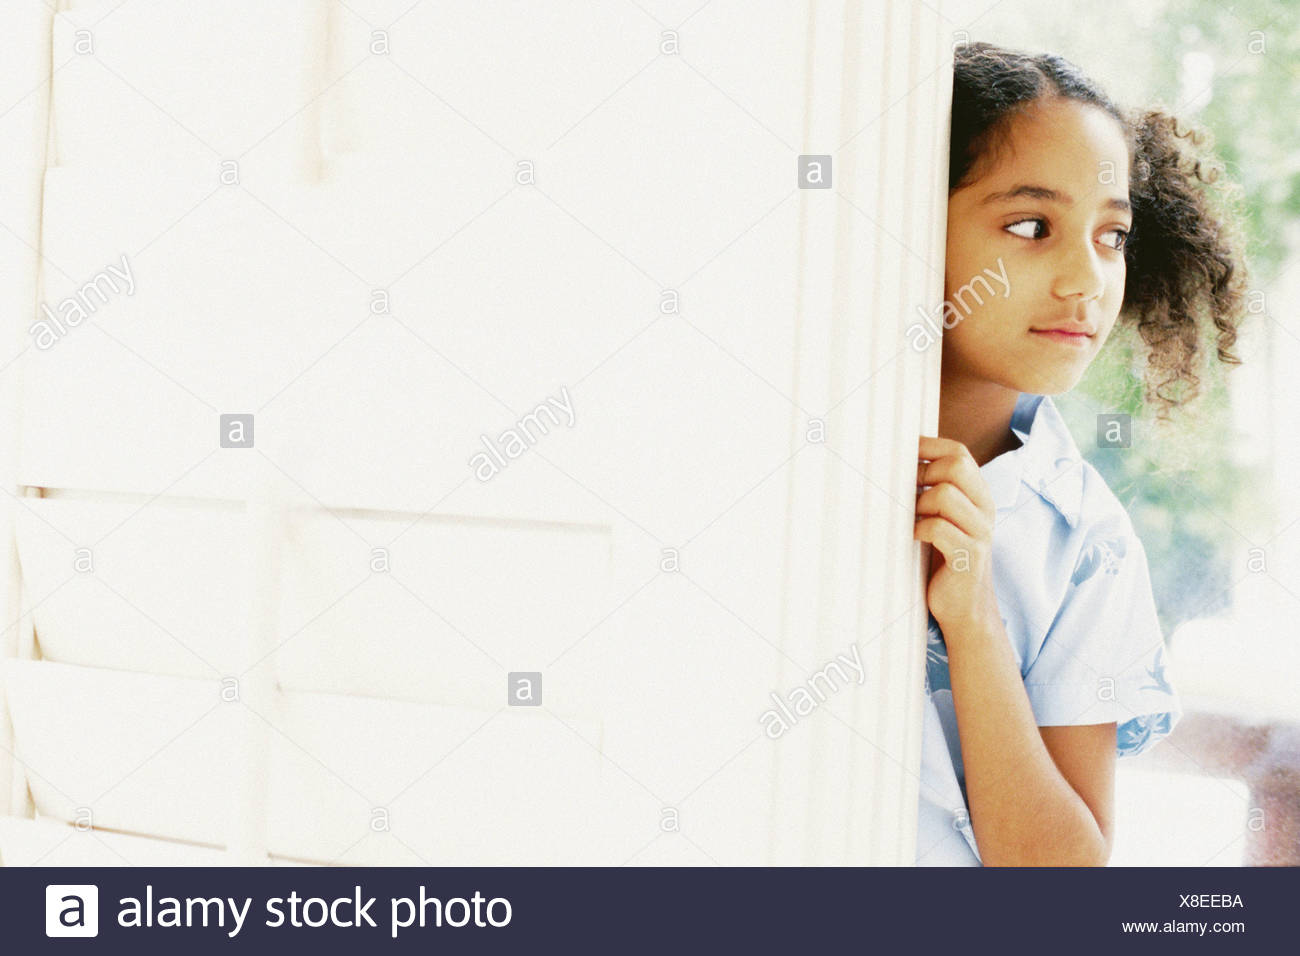 Portrait of a girl - Stock Image